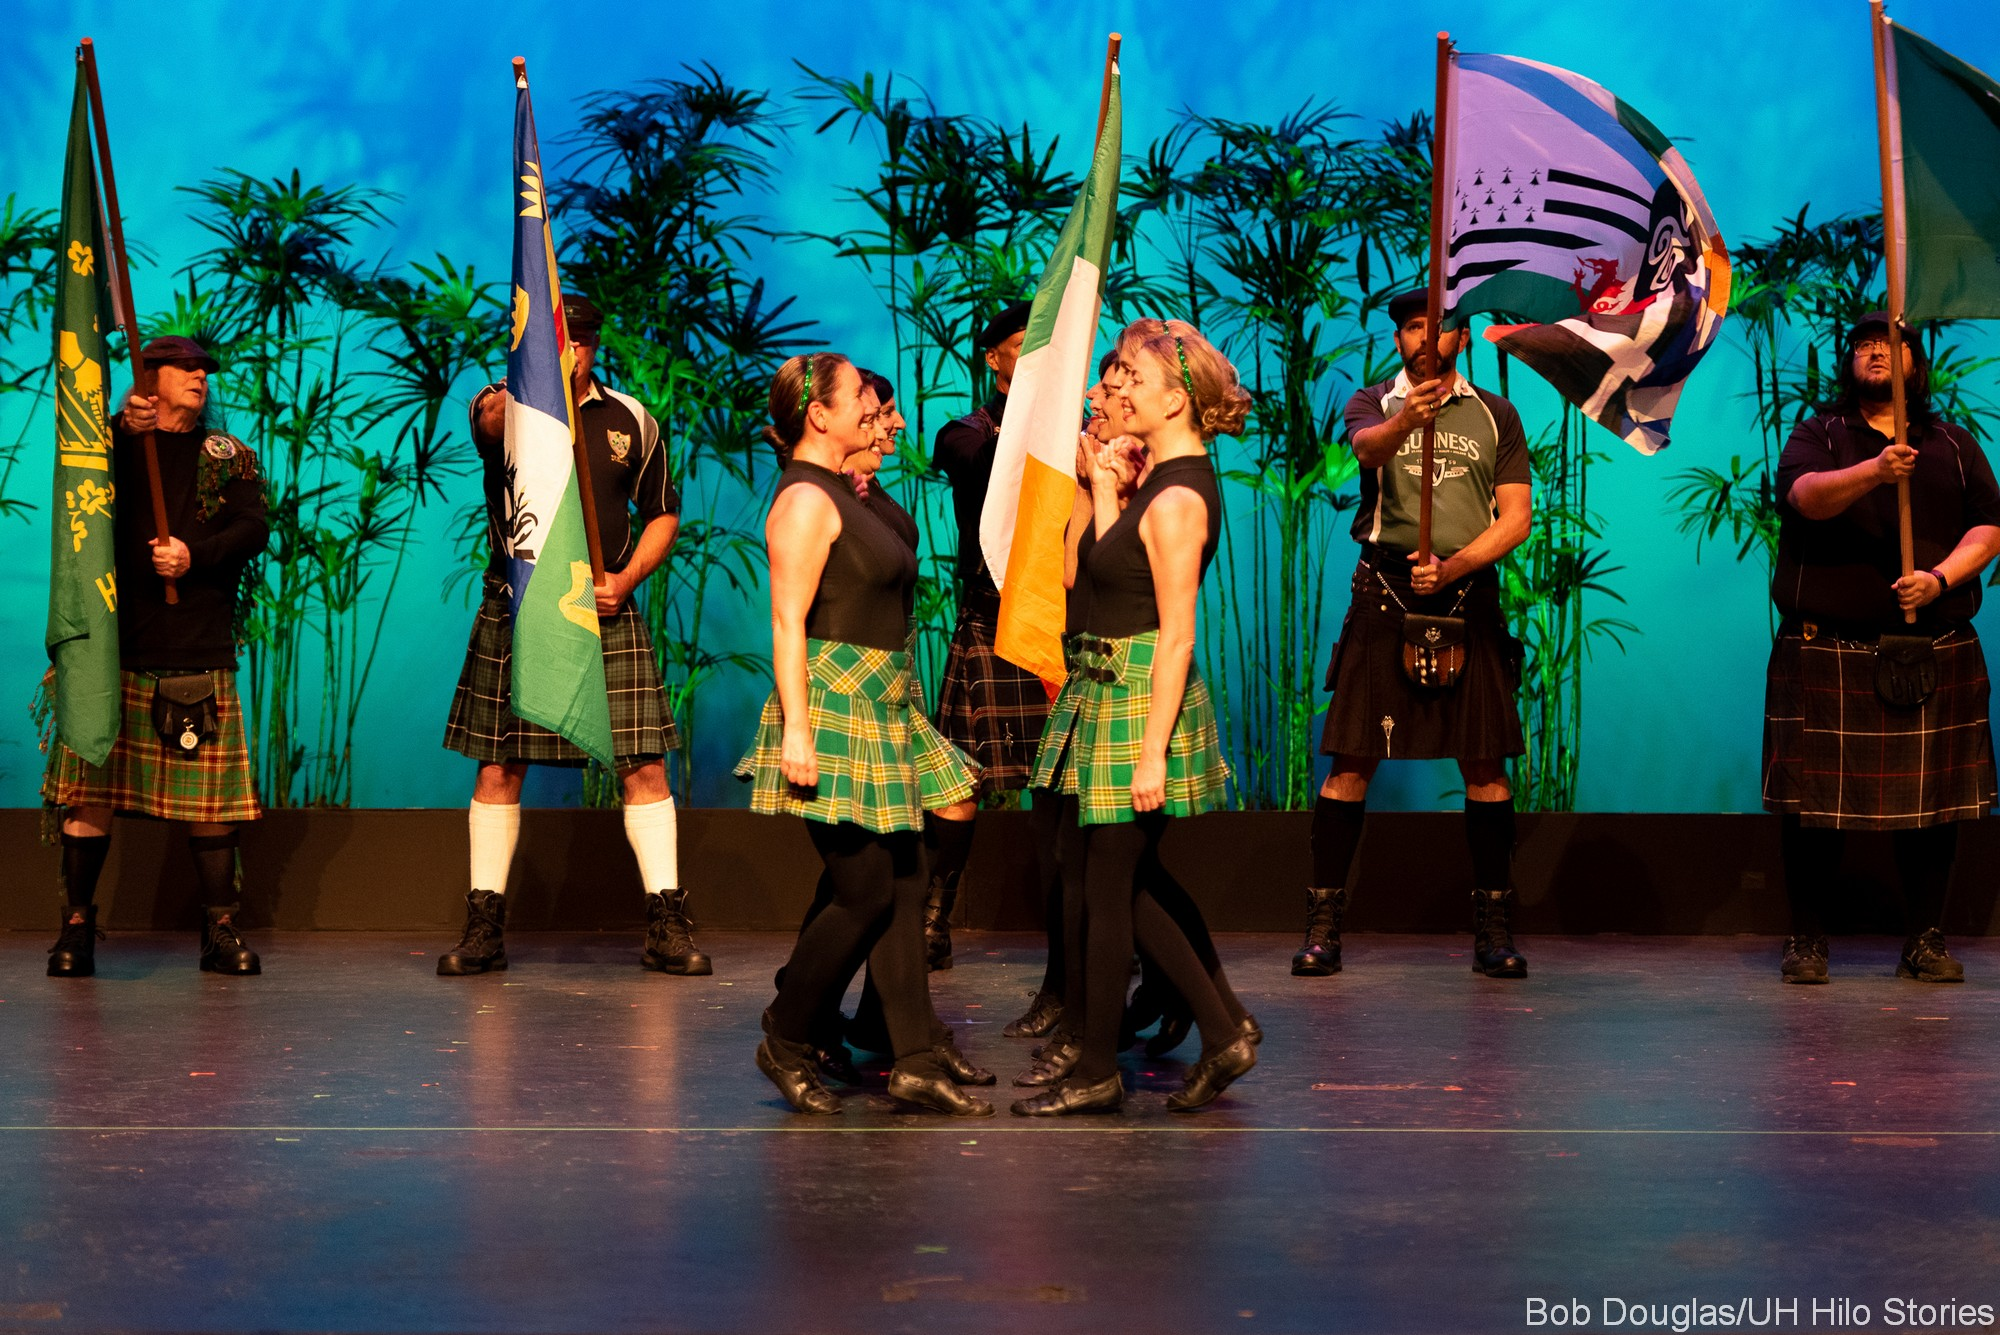 Group of female Irish dancers in traditional dress, plaid skirts, men in background hold flags.